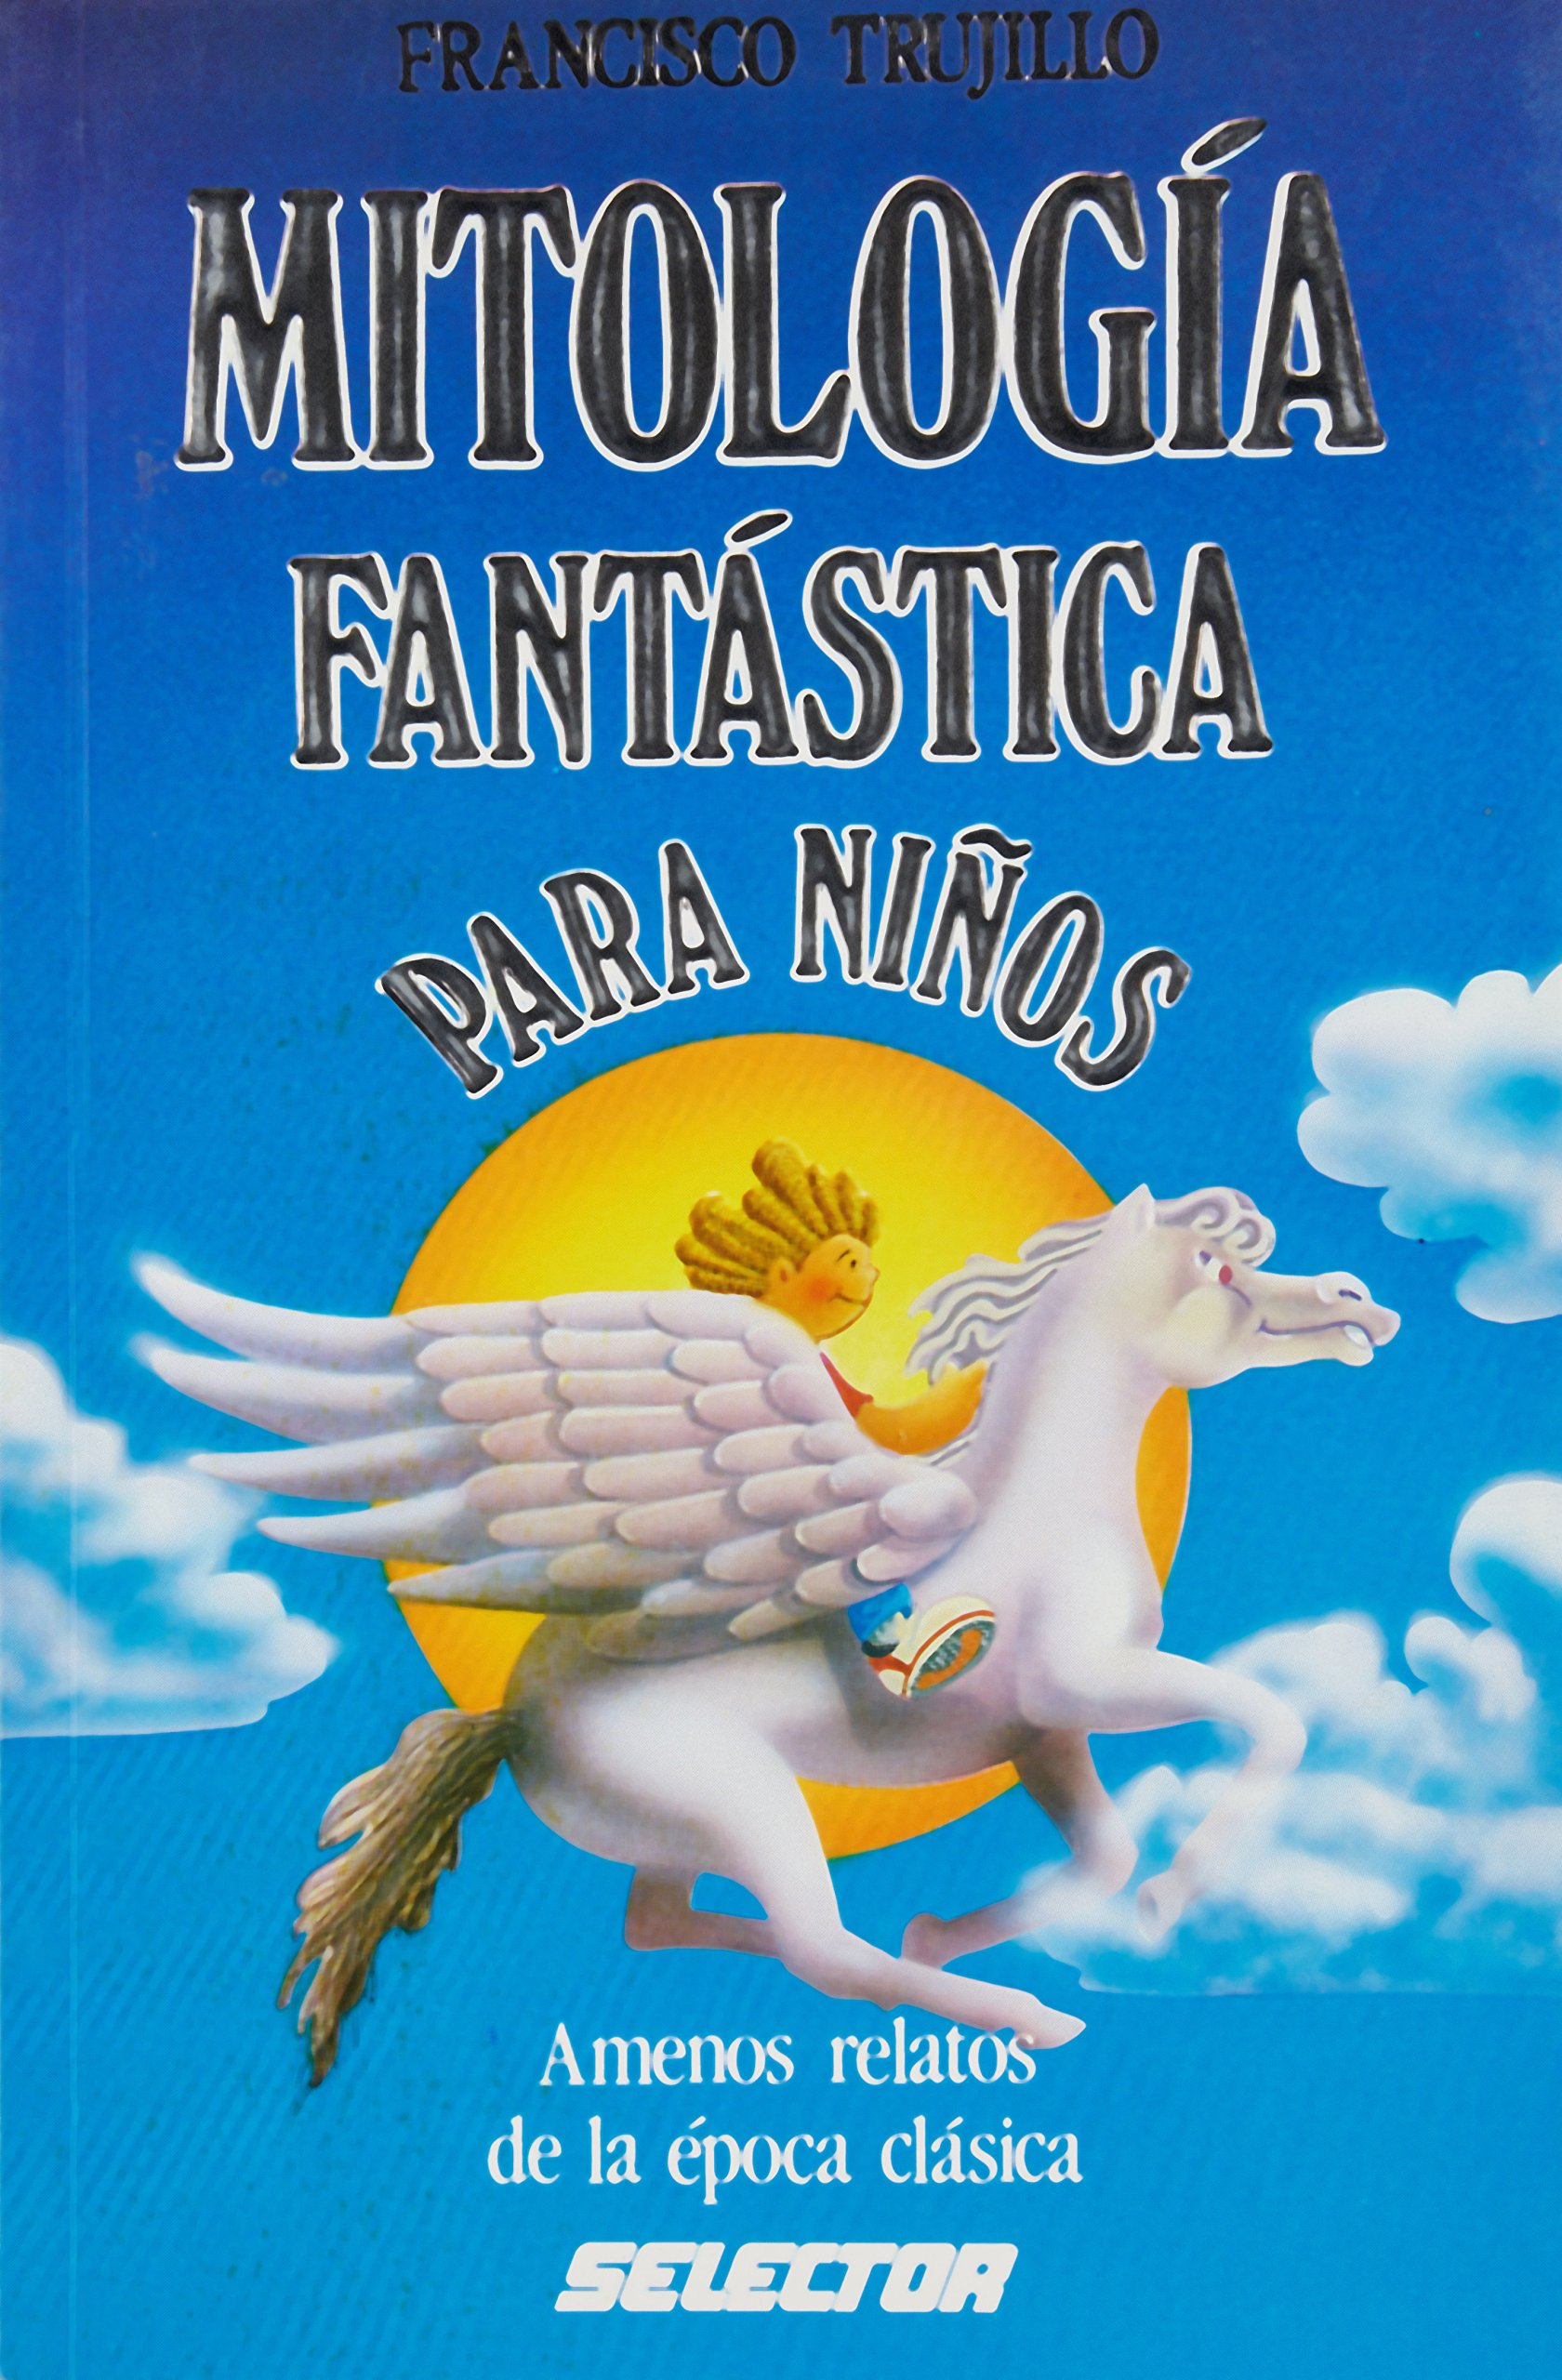 Mitologia Fantastica Para Ninos/ Fantastic Mythology for Children: Amazon.es: Francisco Trujillo: Libros